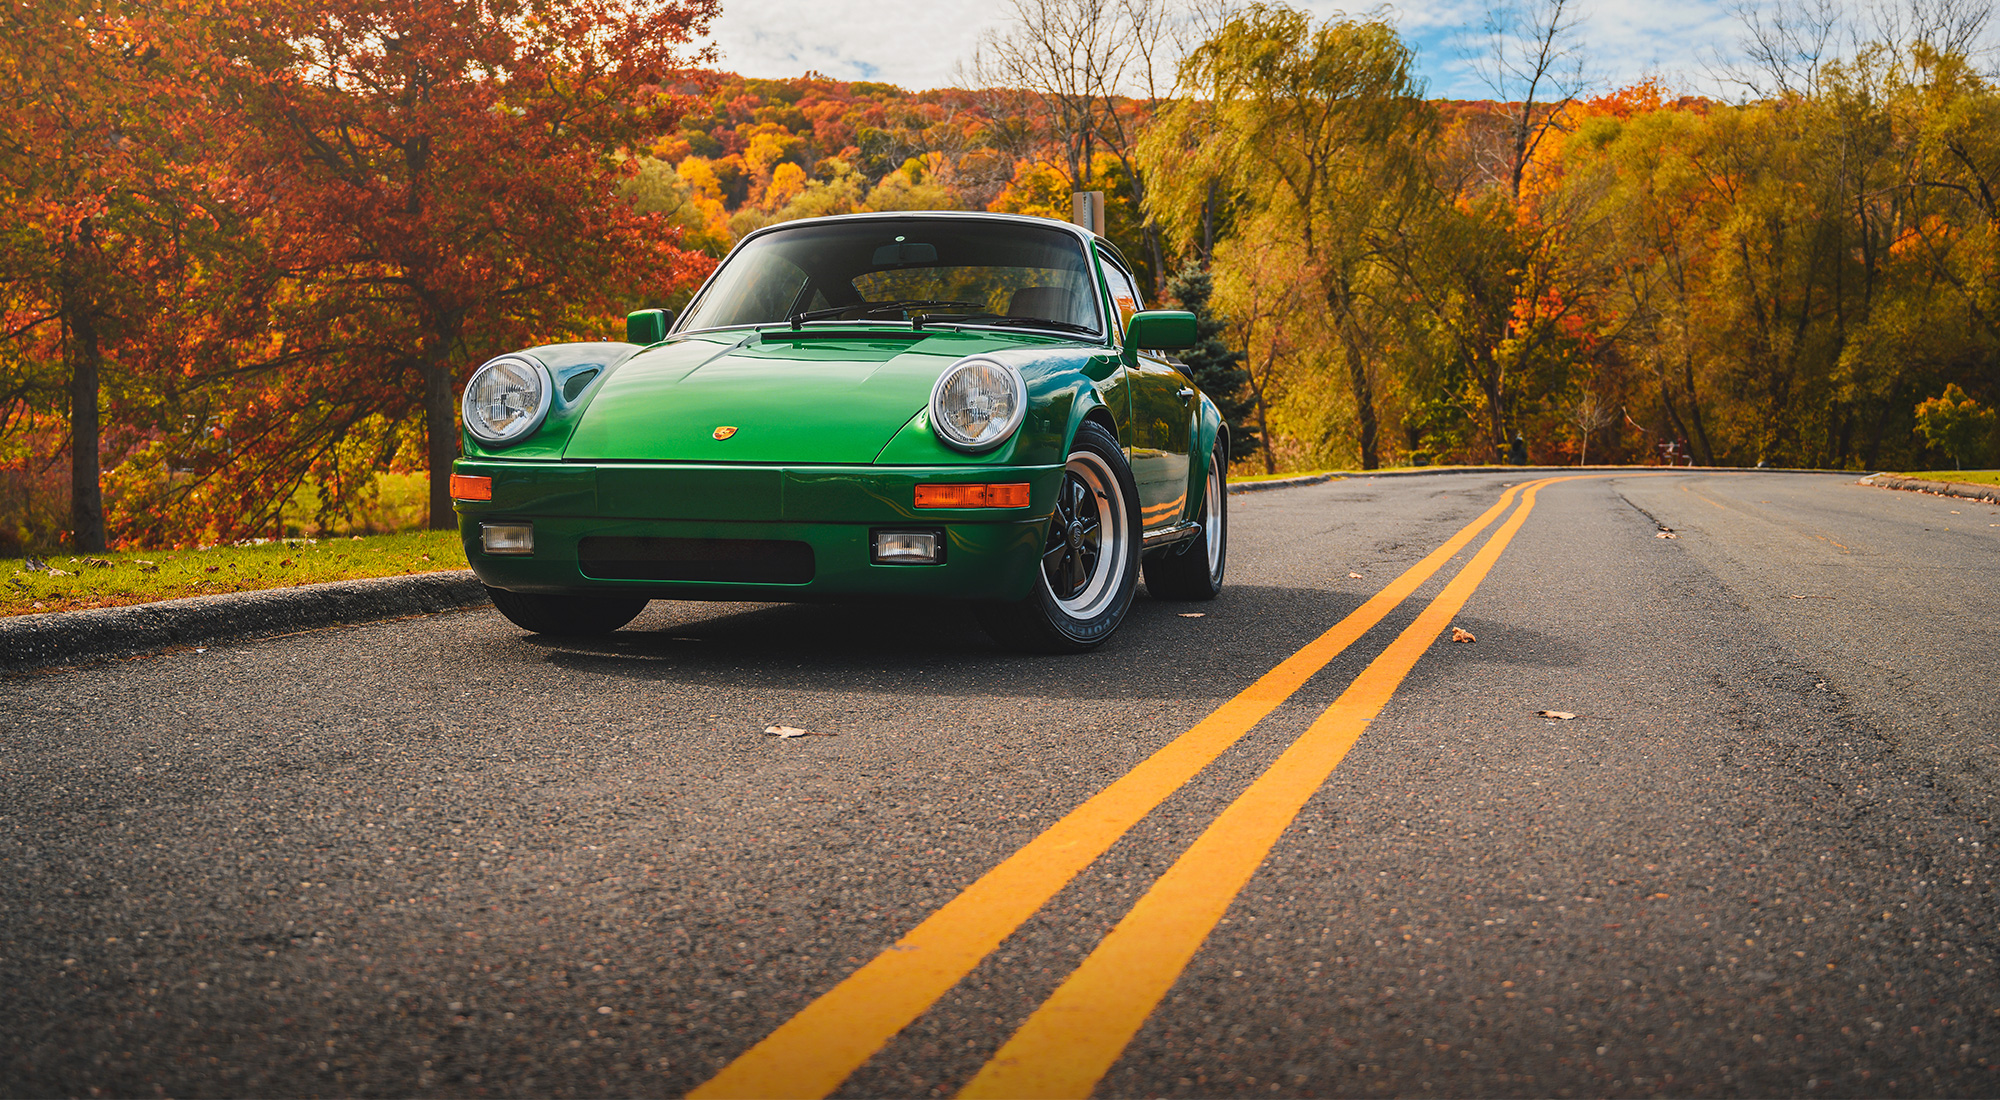 Shooting the Audrain Museum's Porsche 911